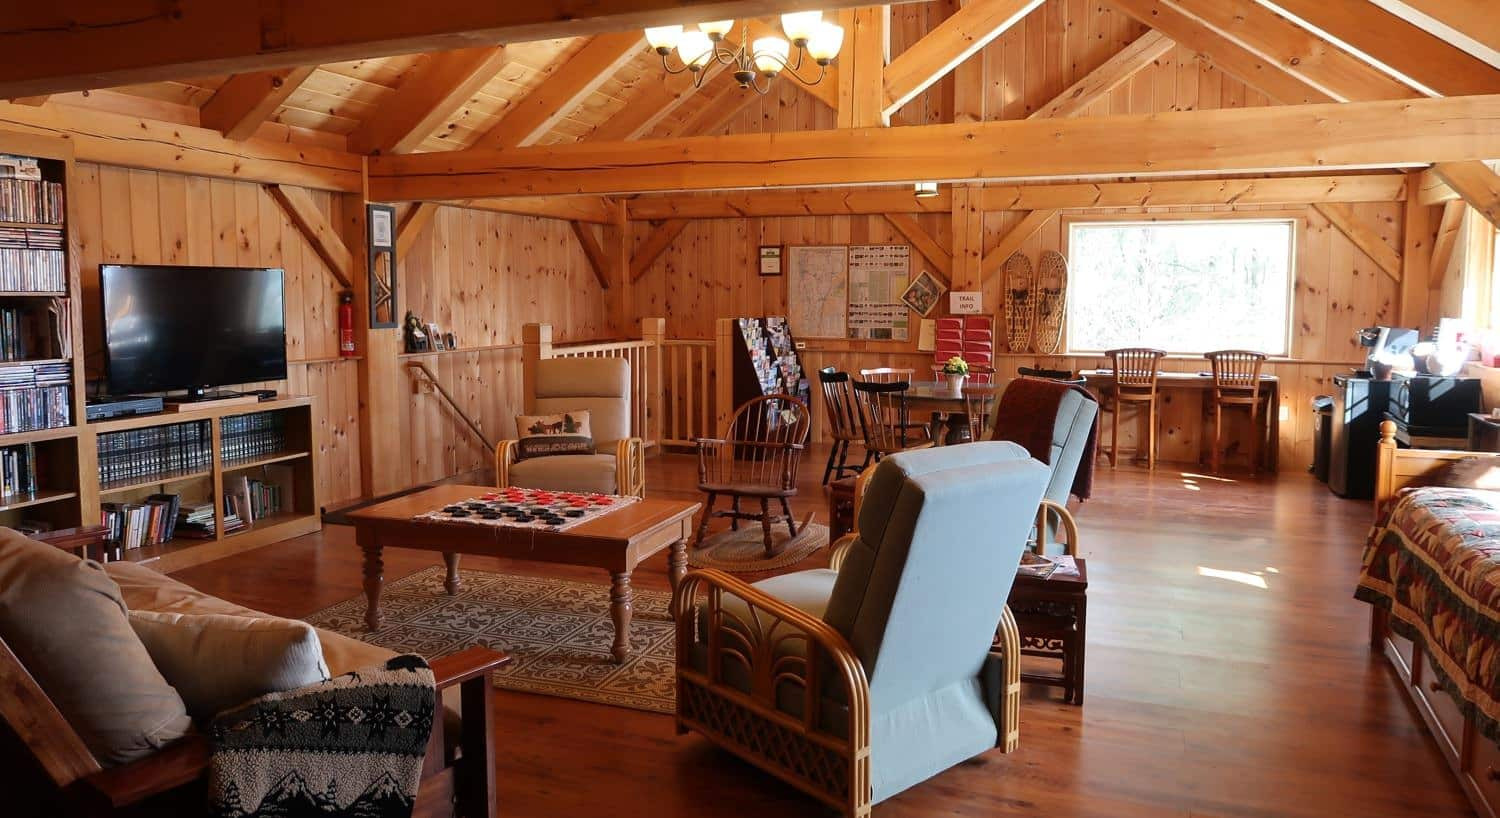 Inside the wooden community cabin with furniture, TV, books, games, dining tables and chairs and bar seating under the window